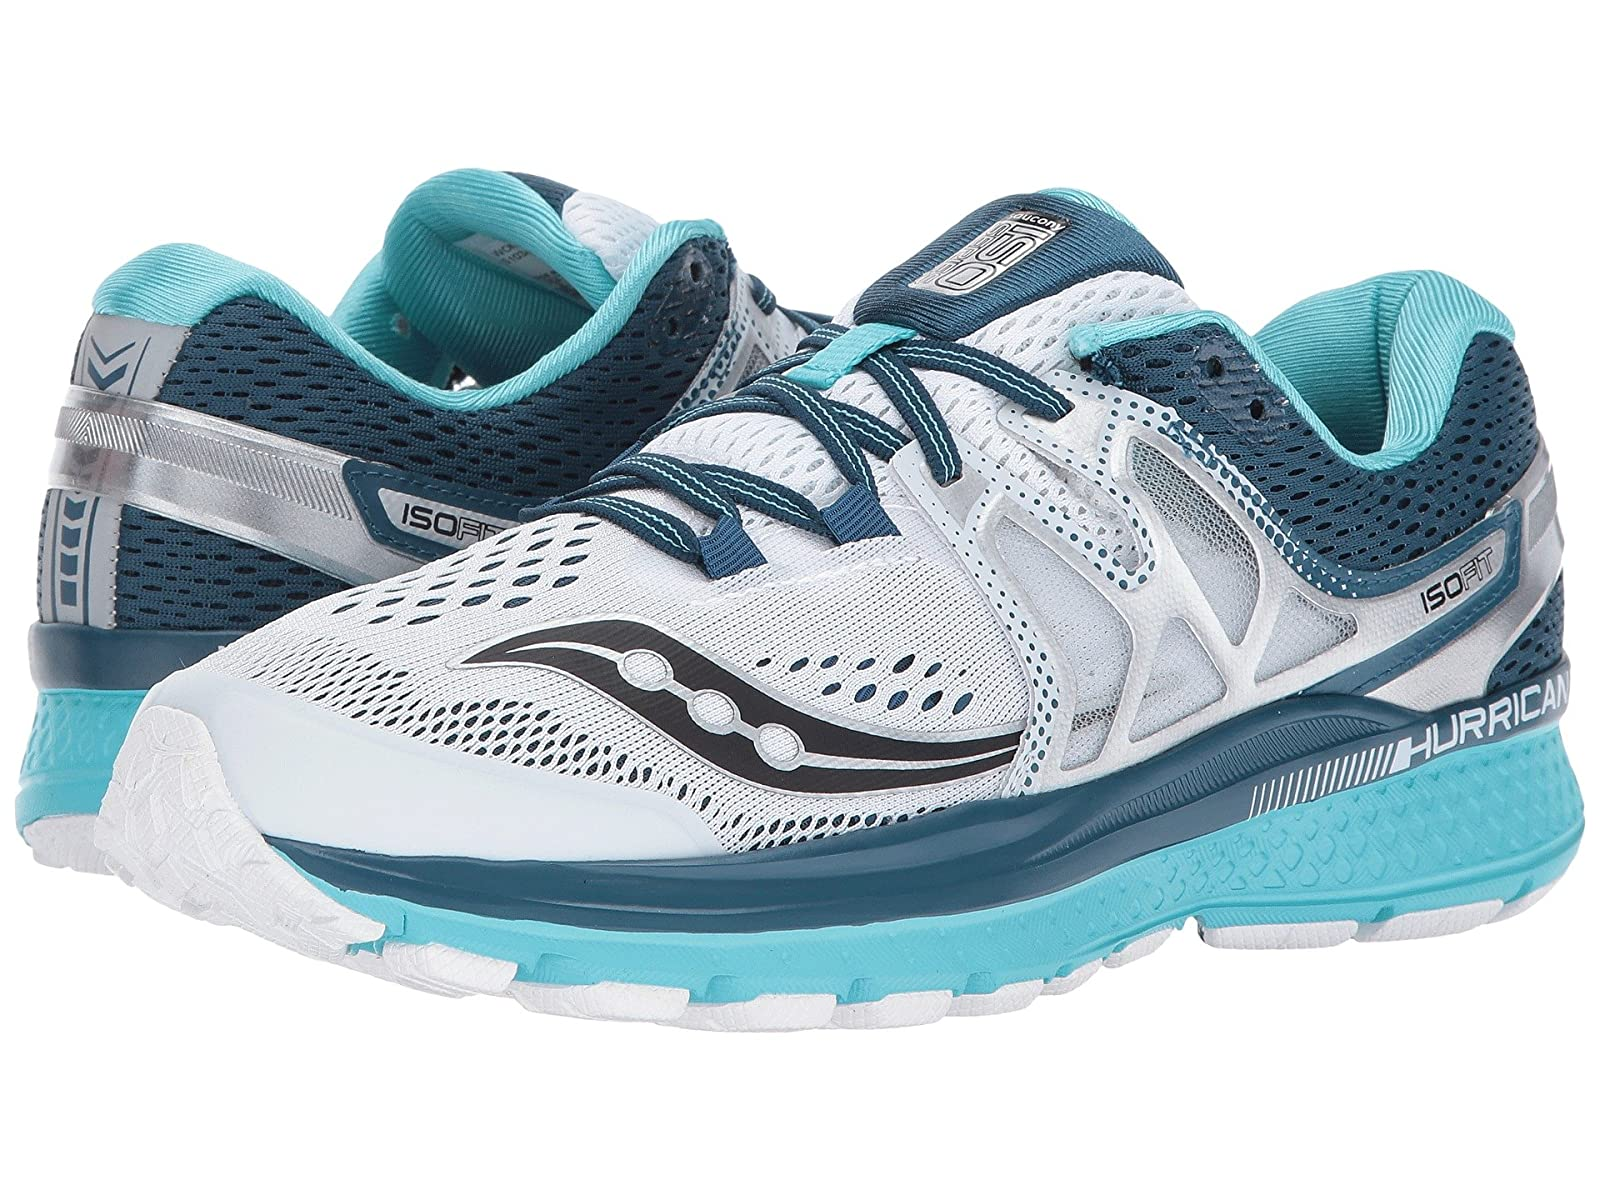 Saucony Hurricane ISO 3Cheap and distinctive eye-catching shoes